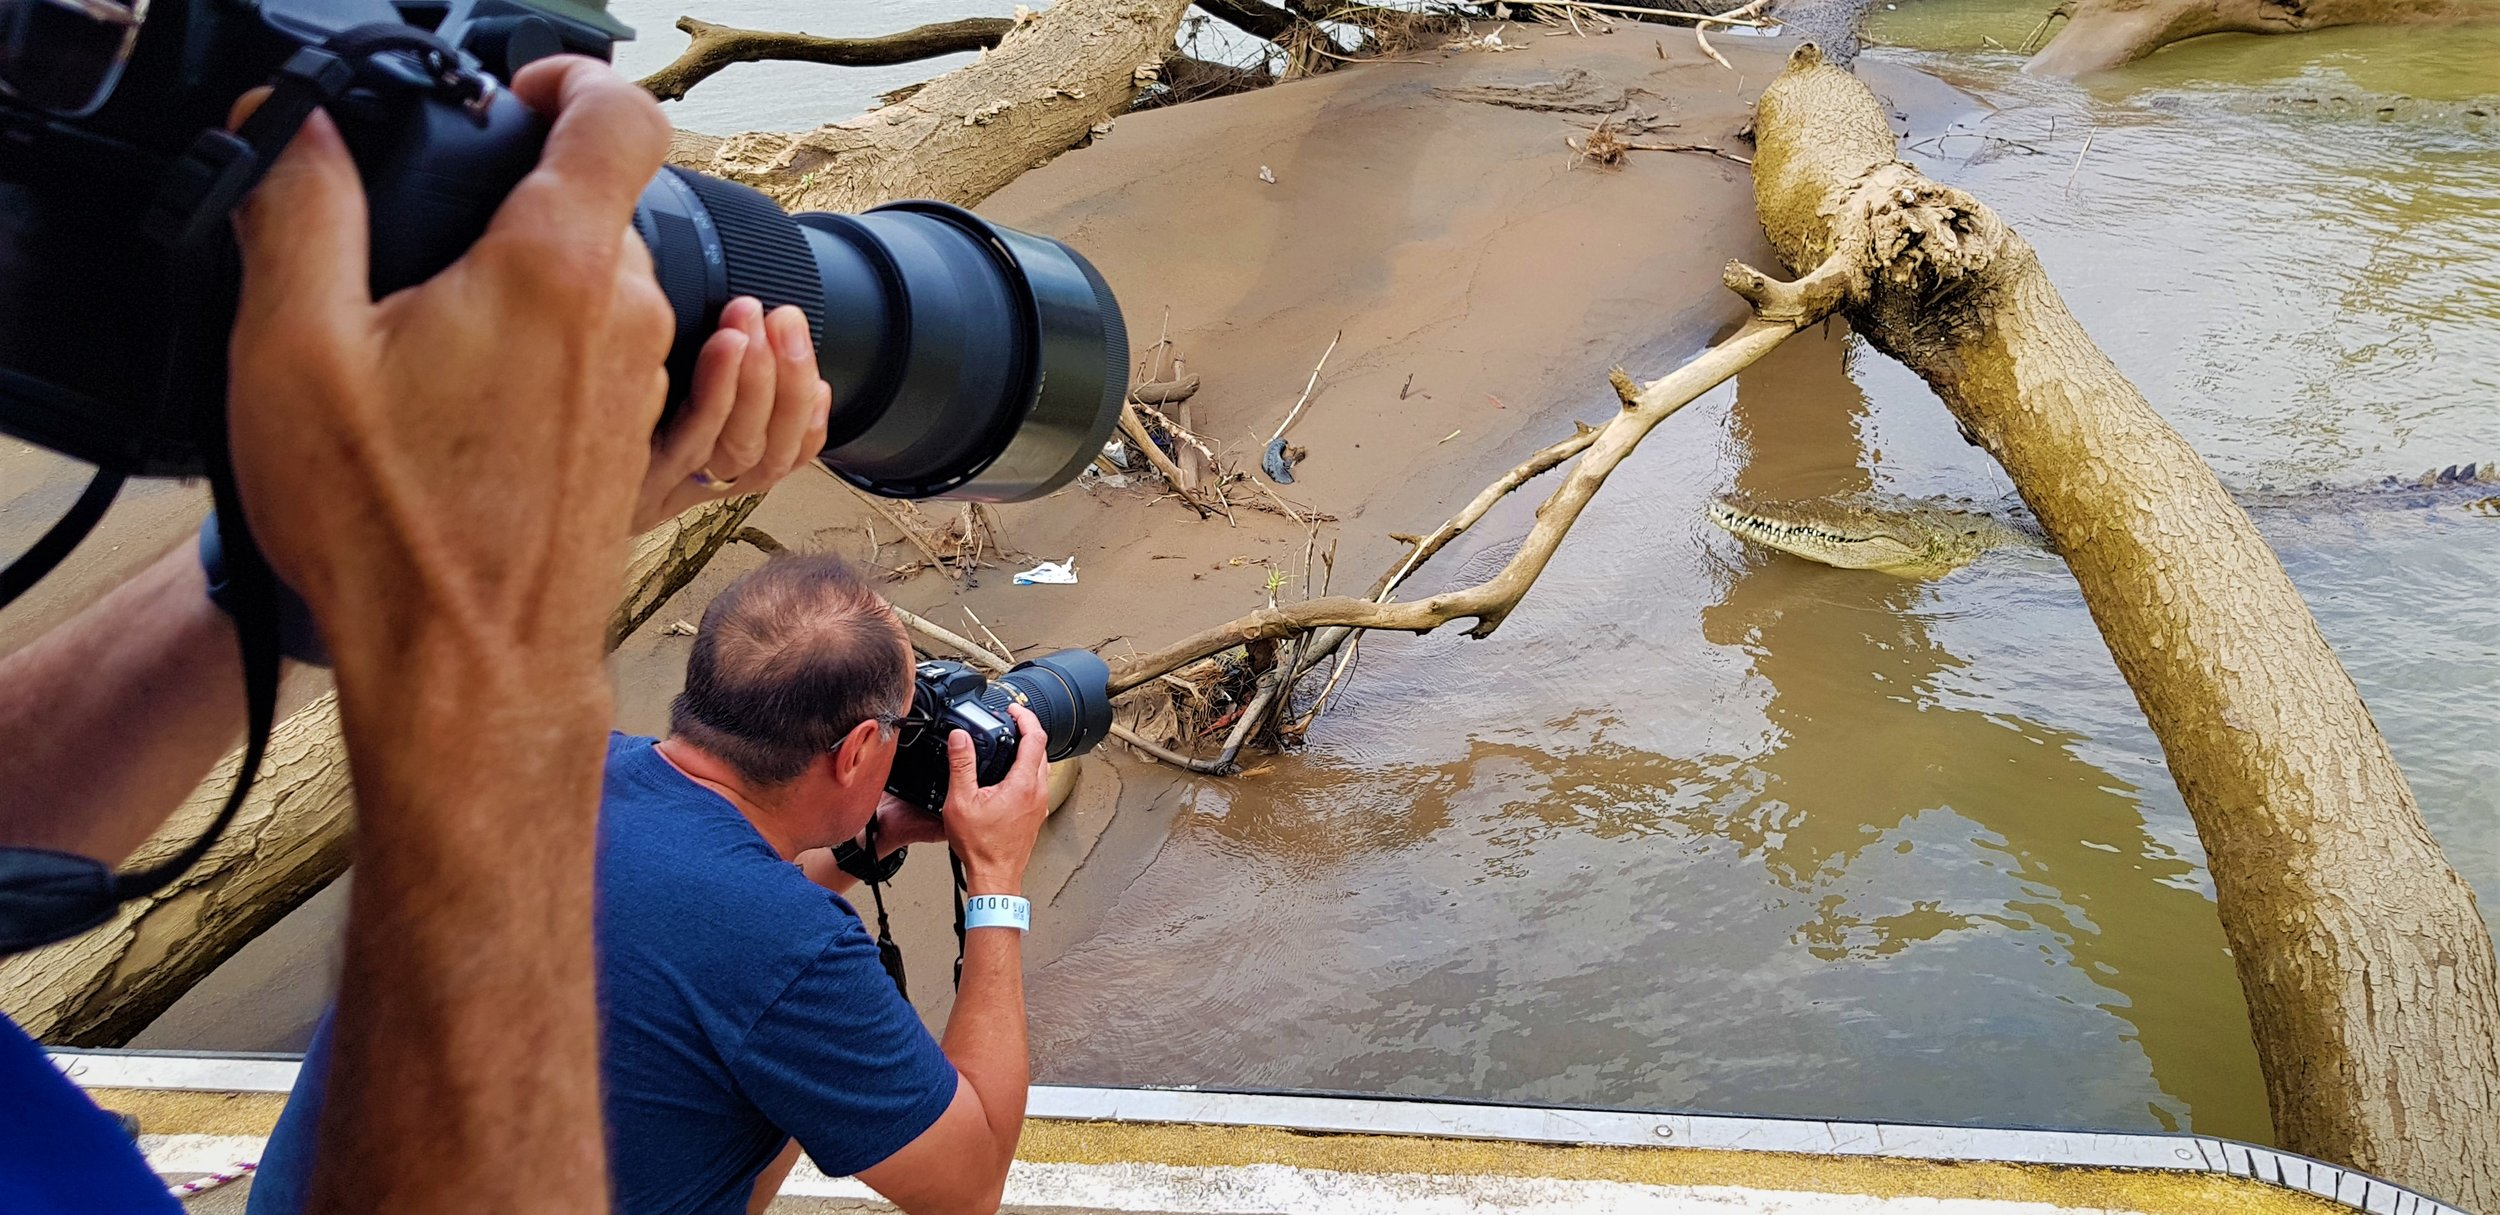 Taking photos of the crocs